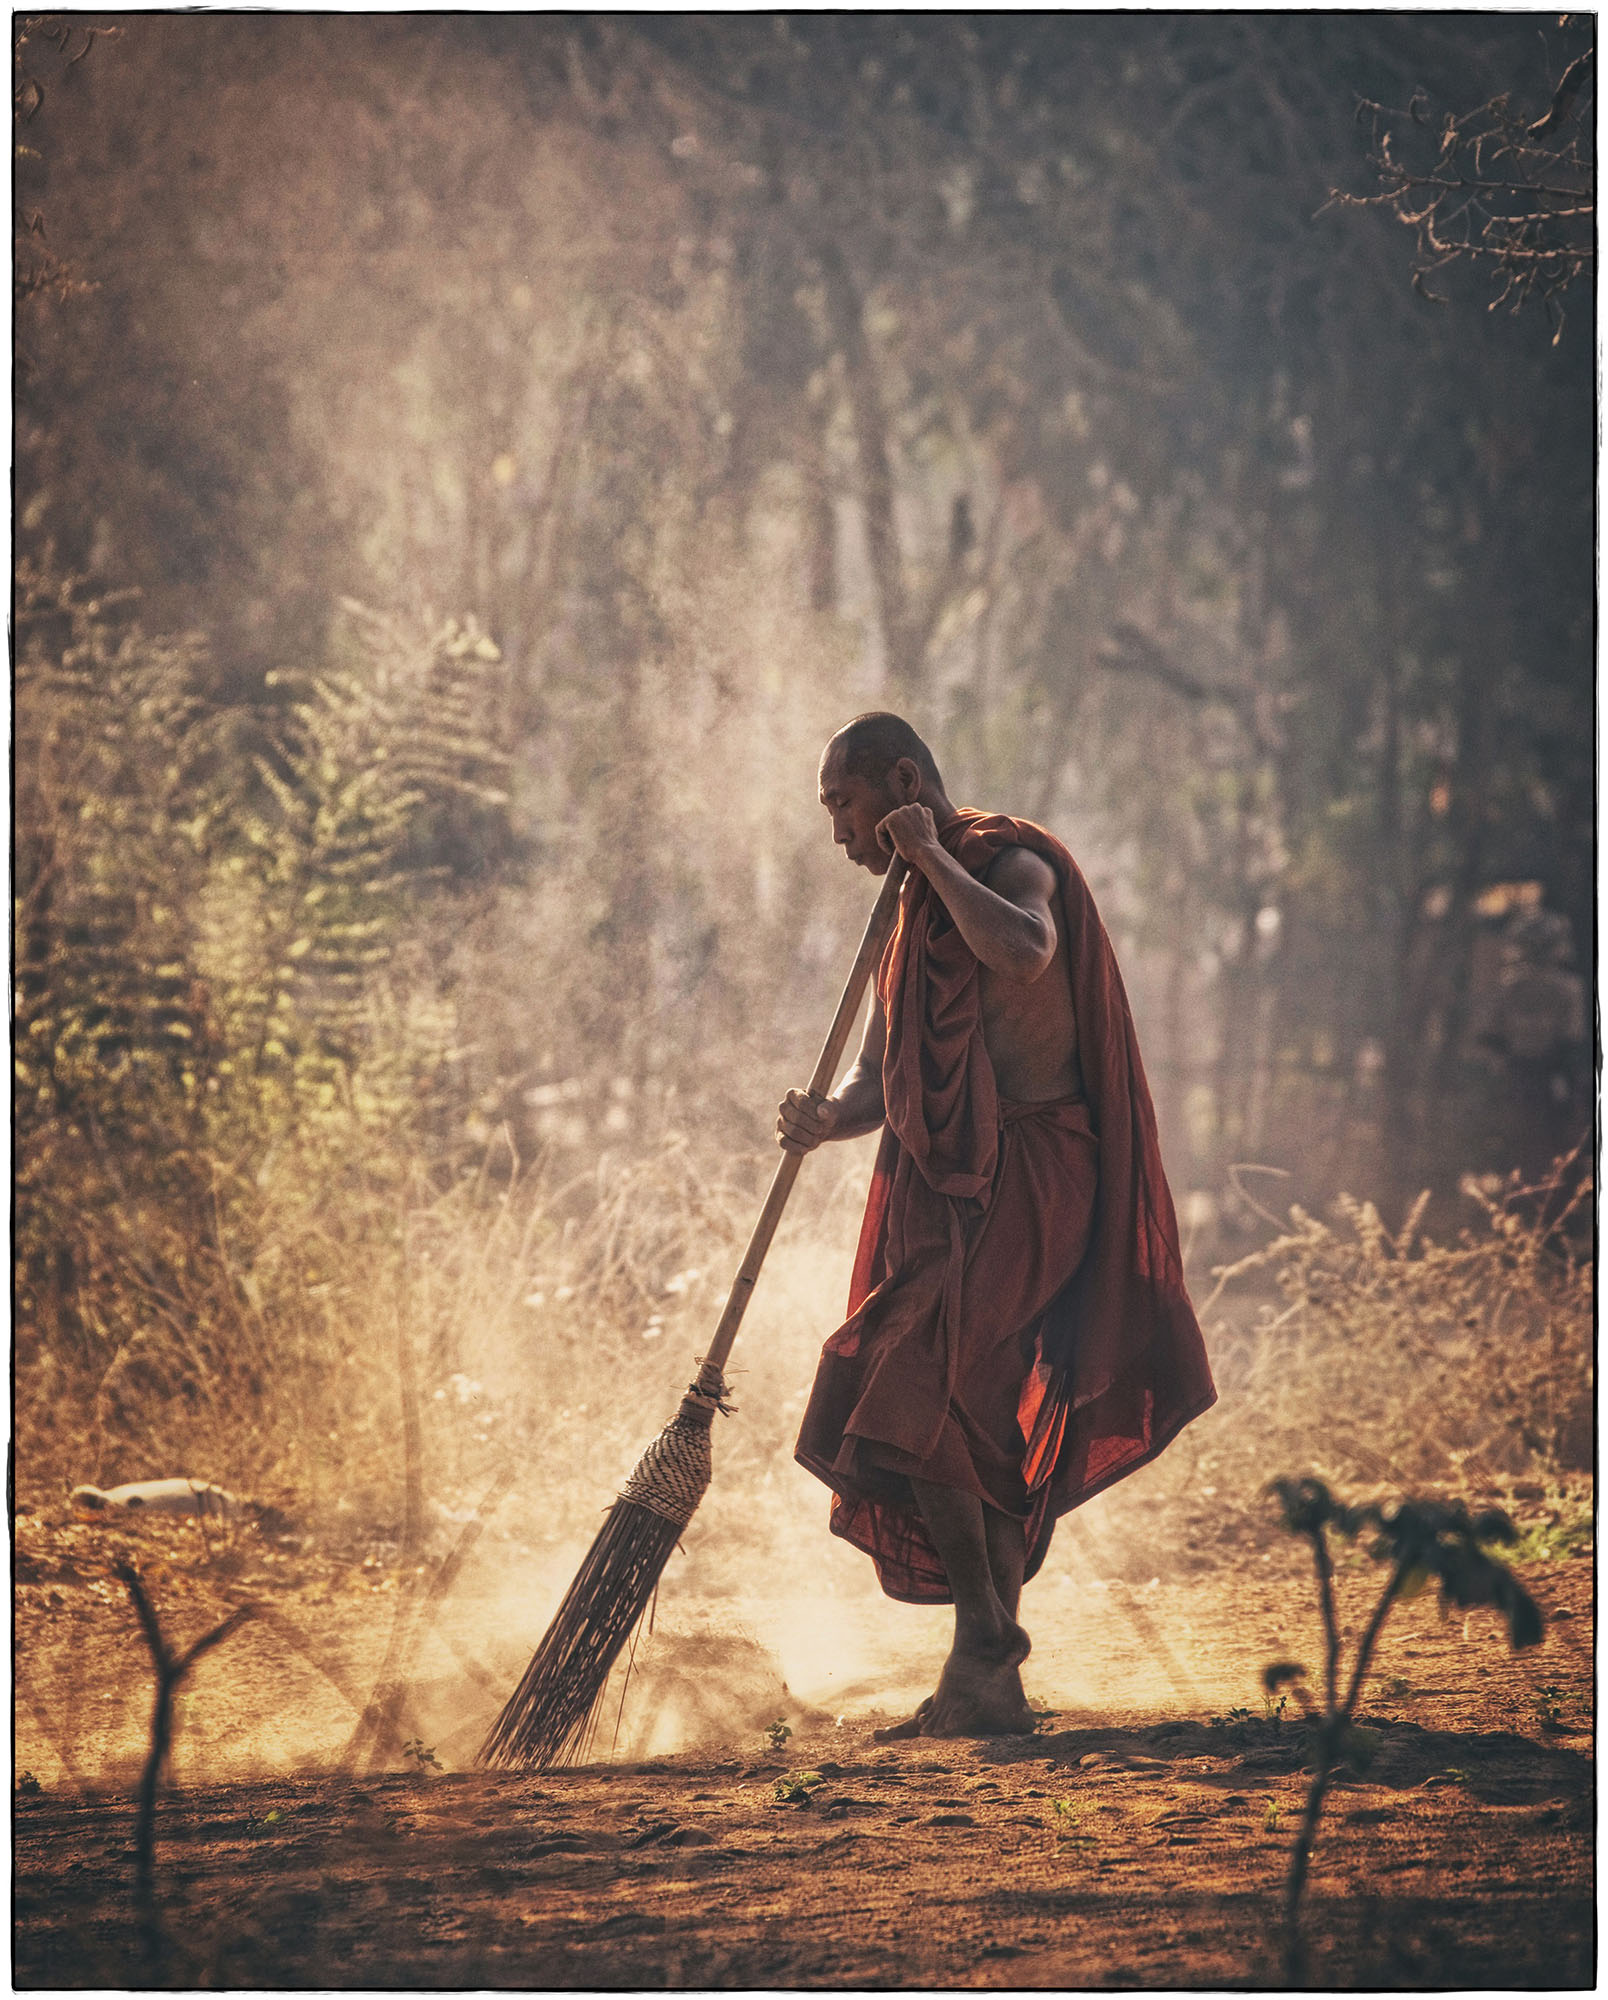 buddhist-monk-sweeping-buddhist-buddhism-monk-wallpaper-wp3003997